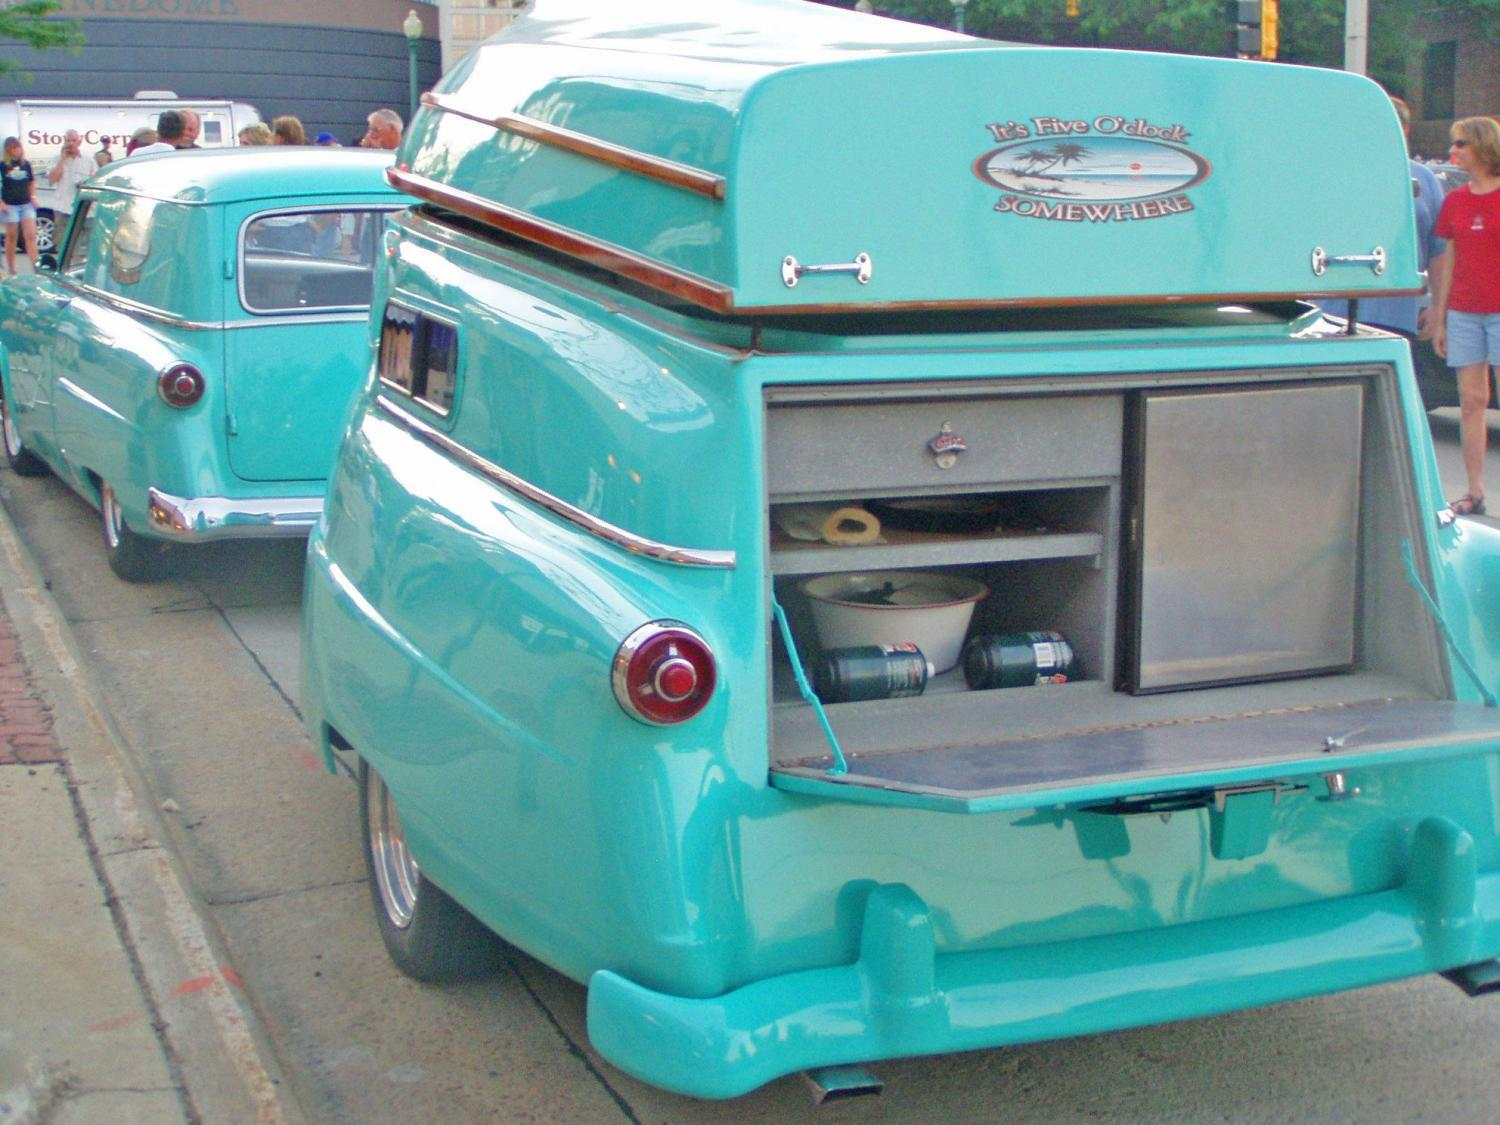 Retro Camper Boat - 1950's Teardrop trailer with row boat as roof of camper